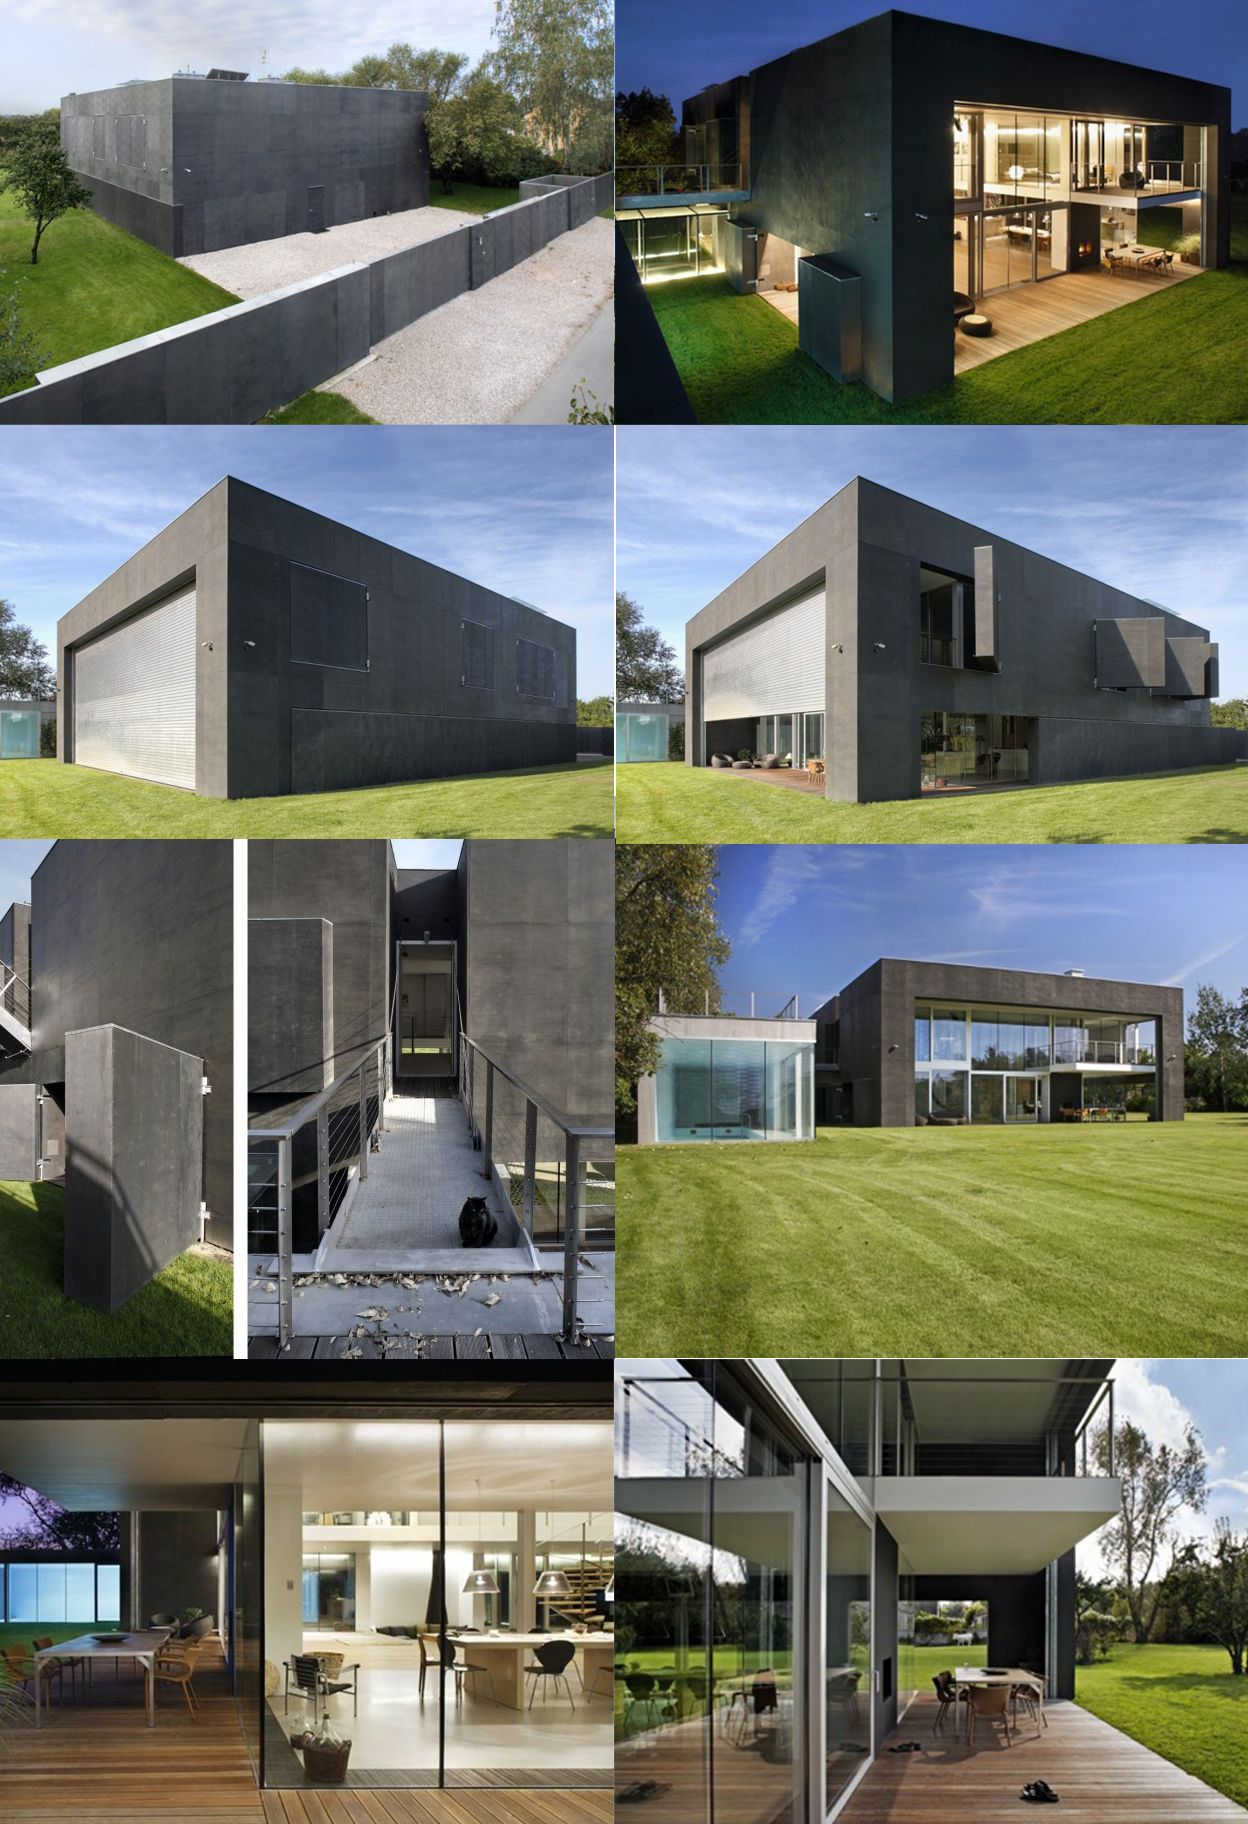 Zombie Apocalypse Proof Home in 2019 | Zombie proof house ... on compound house plans, scary house plans, dreams house plans, smurf house plans, vampire house plans, mine craft house plans, fortified house plans, super luxury southern house plans, evil doll house plans, 18th century victorian house plans, nc house plans, hardened house plans, sci-fi house plans, survival house plans, homestead house plans, tactical house plans, cowboy house plans, manhattan house plans, floor mansion mega house plans,